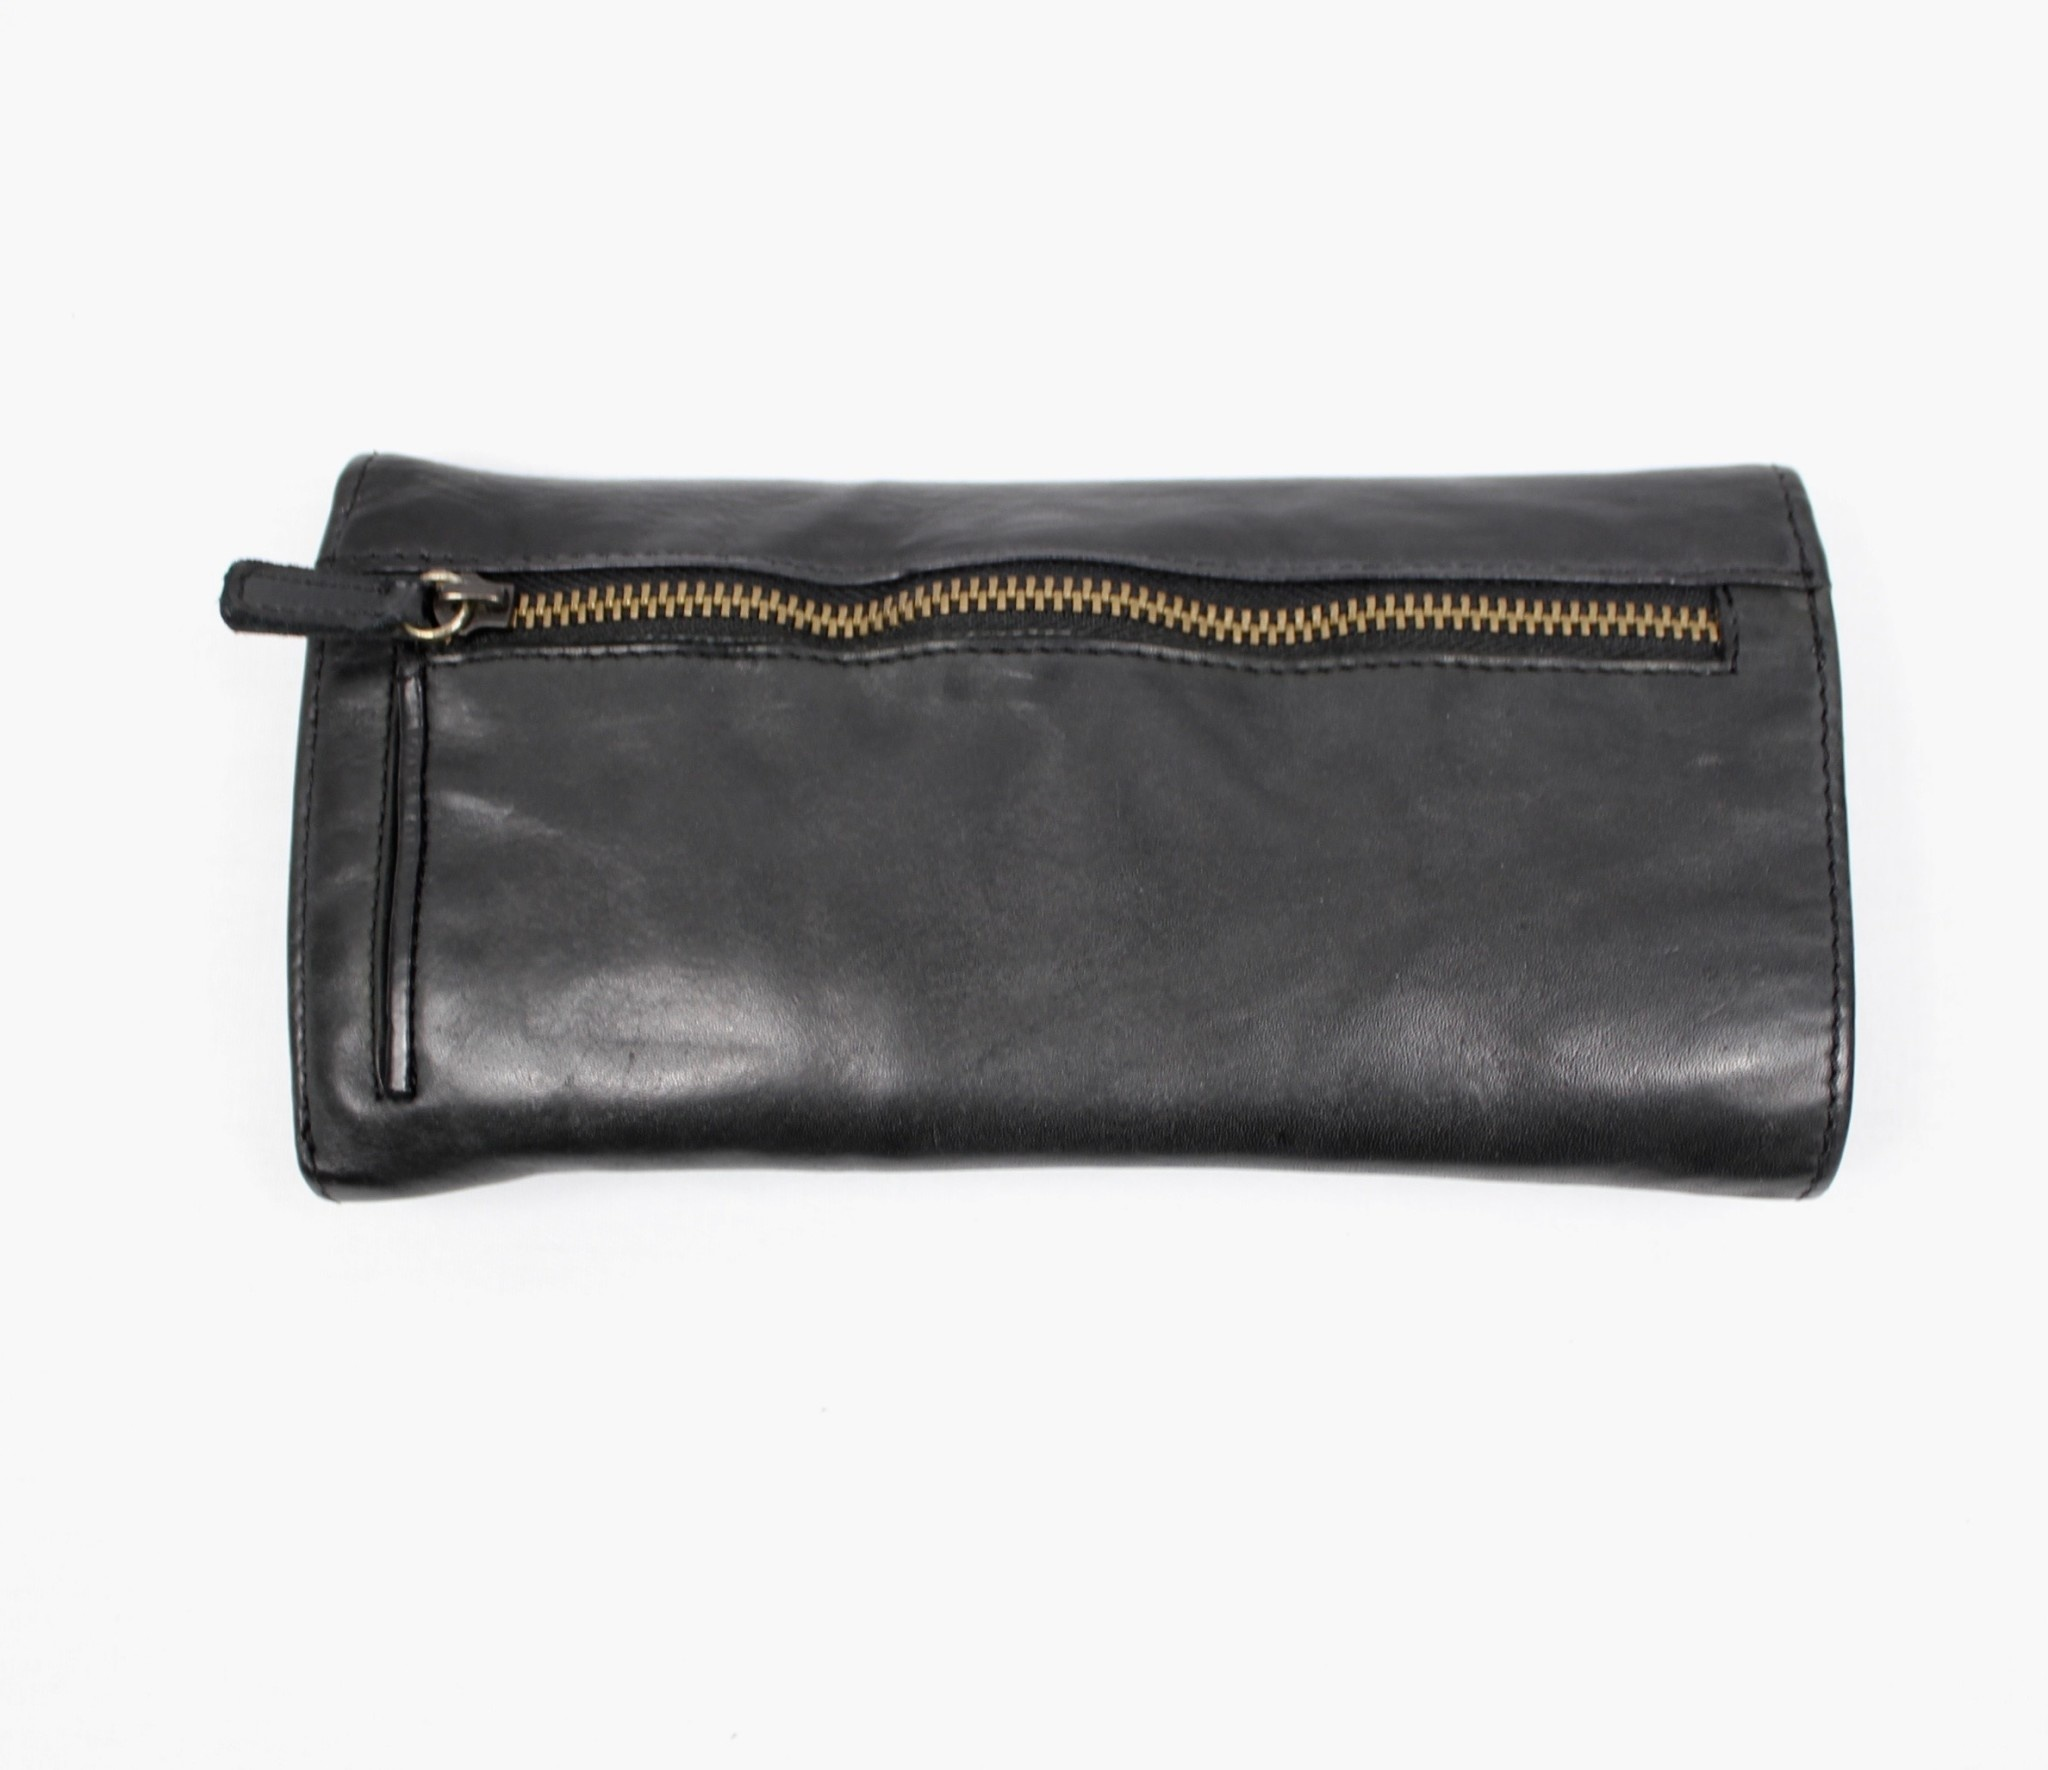 THE TREND THE TREND 4208245 Leather Wallet